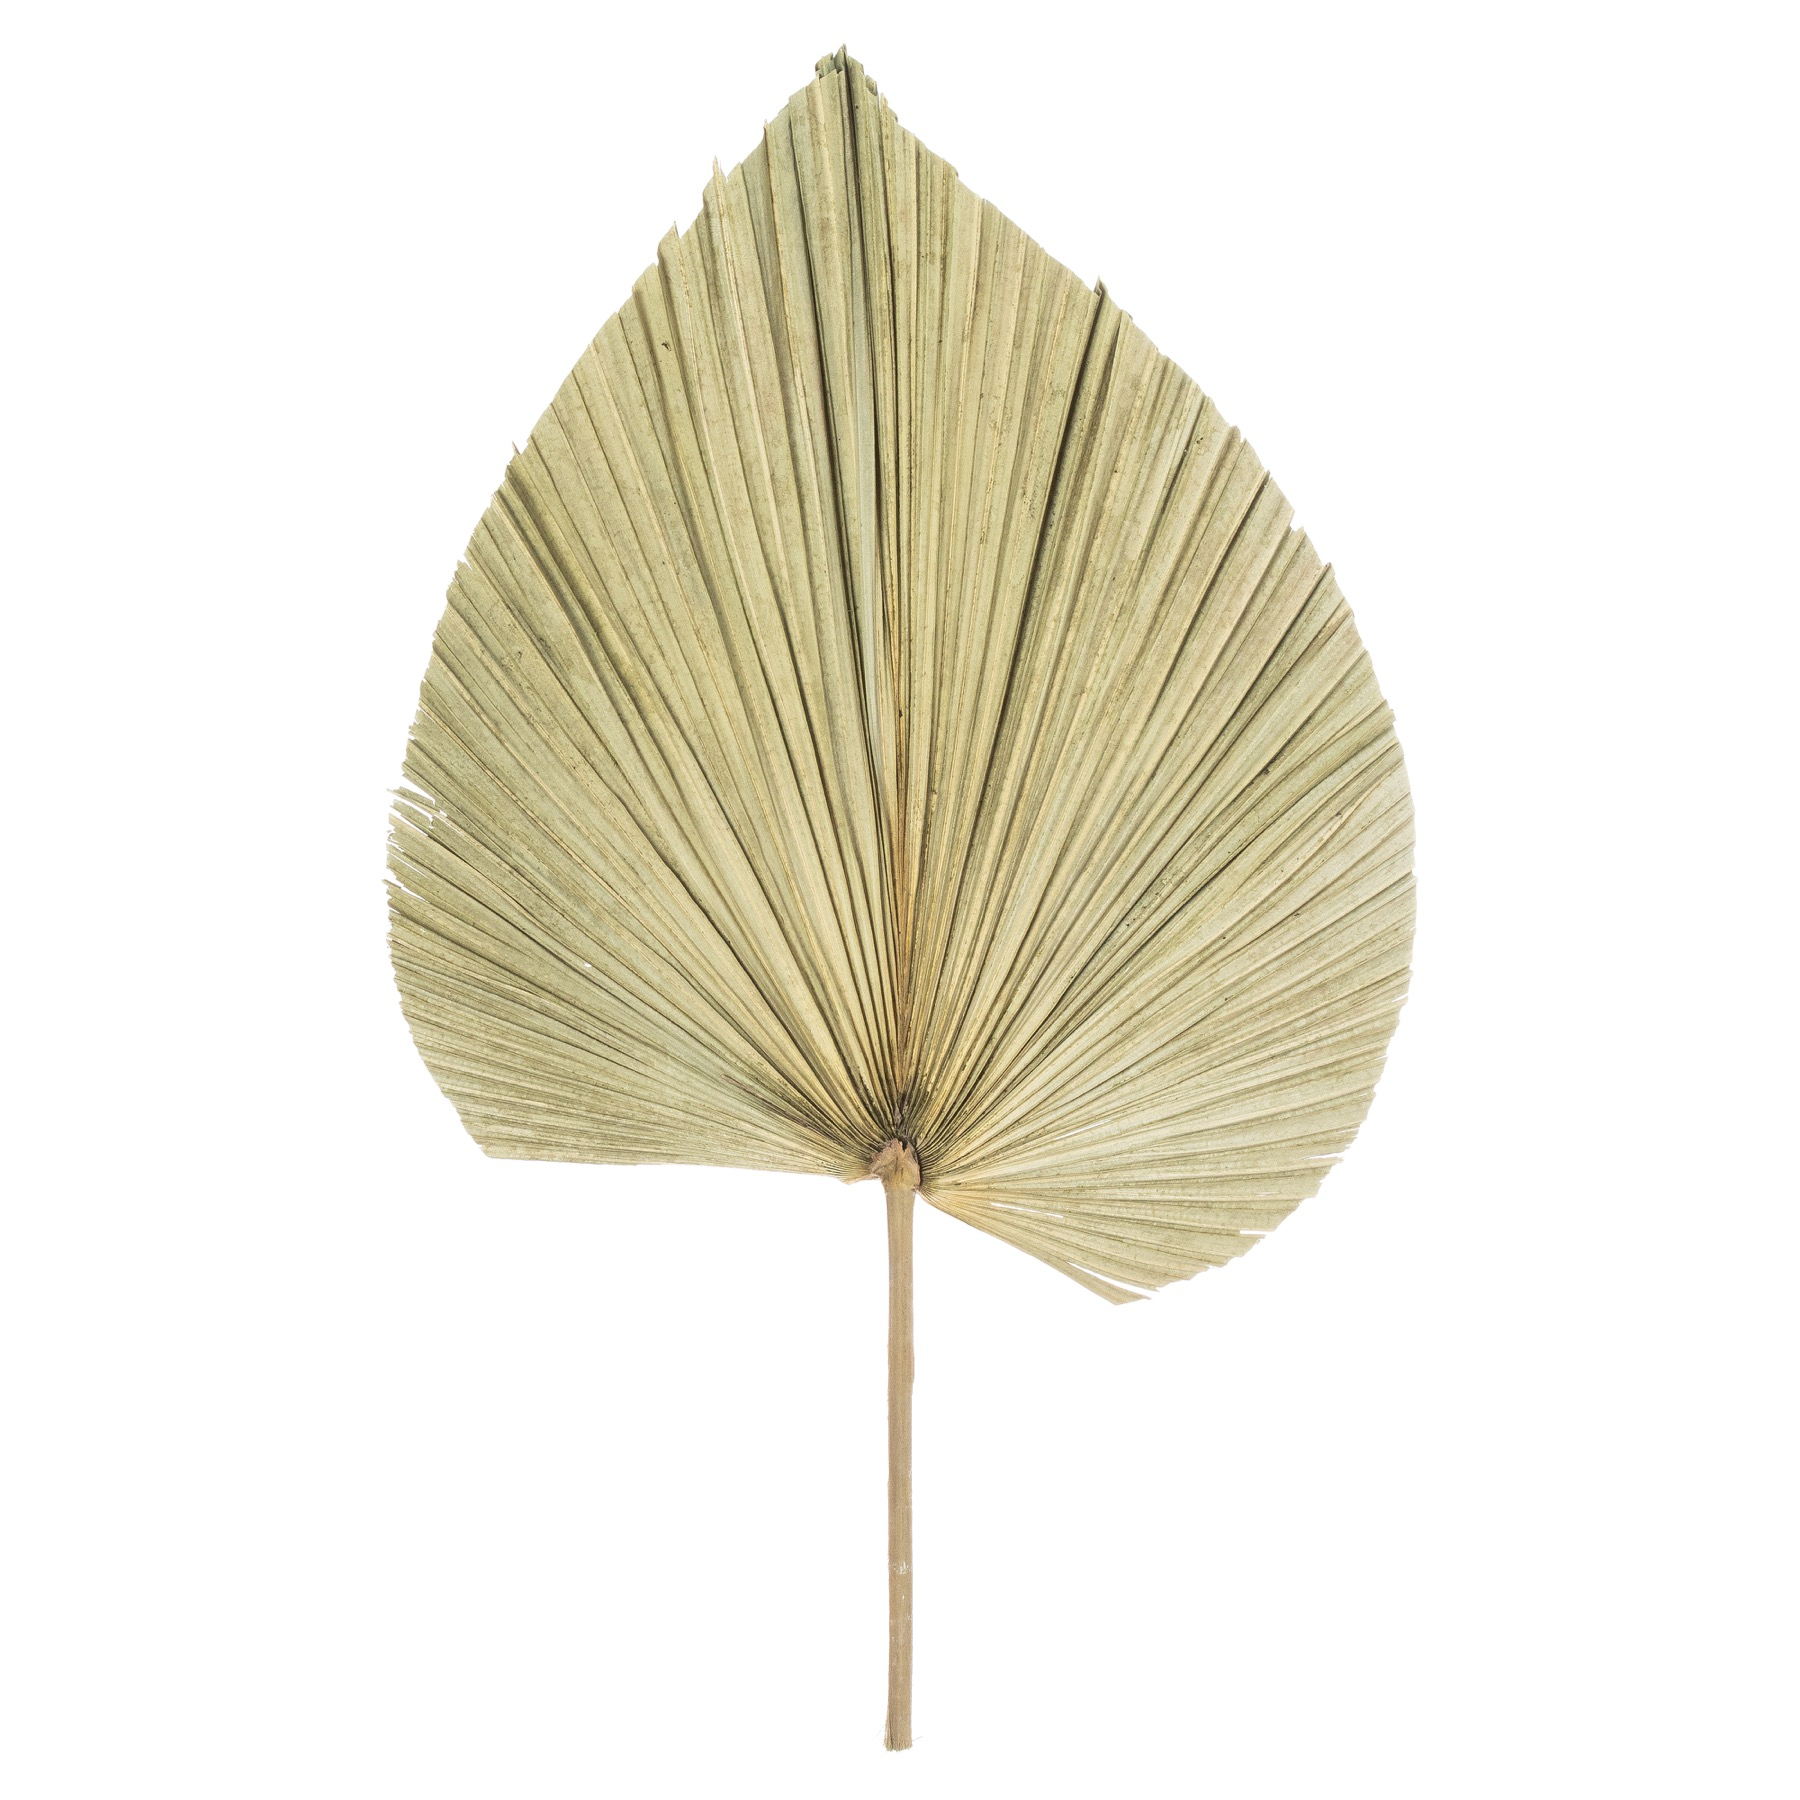 Dried Natural Fan Palm - Image 1